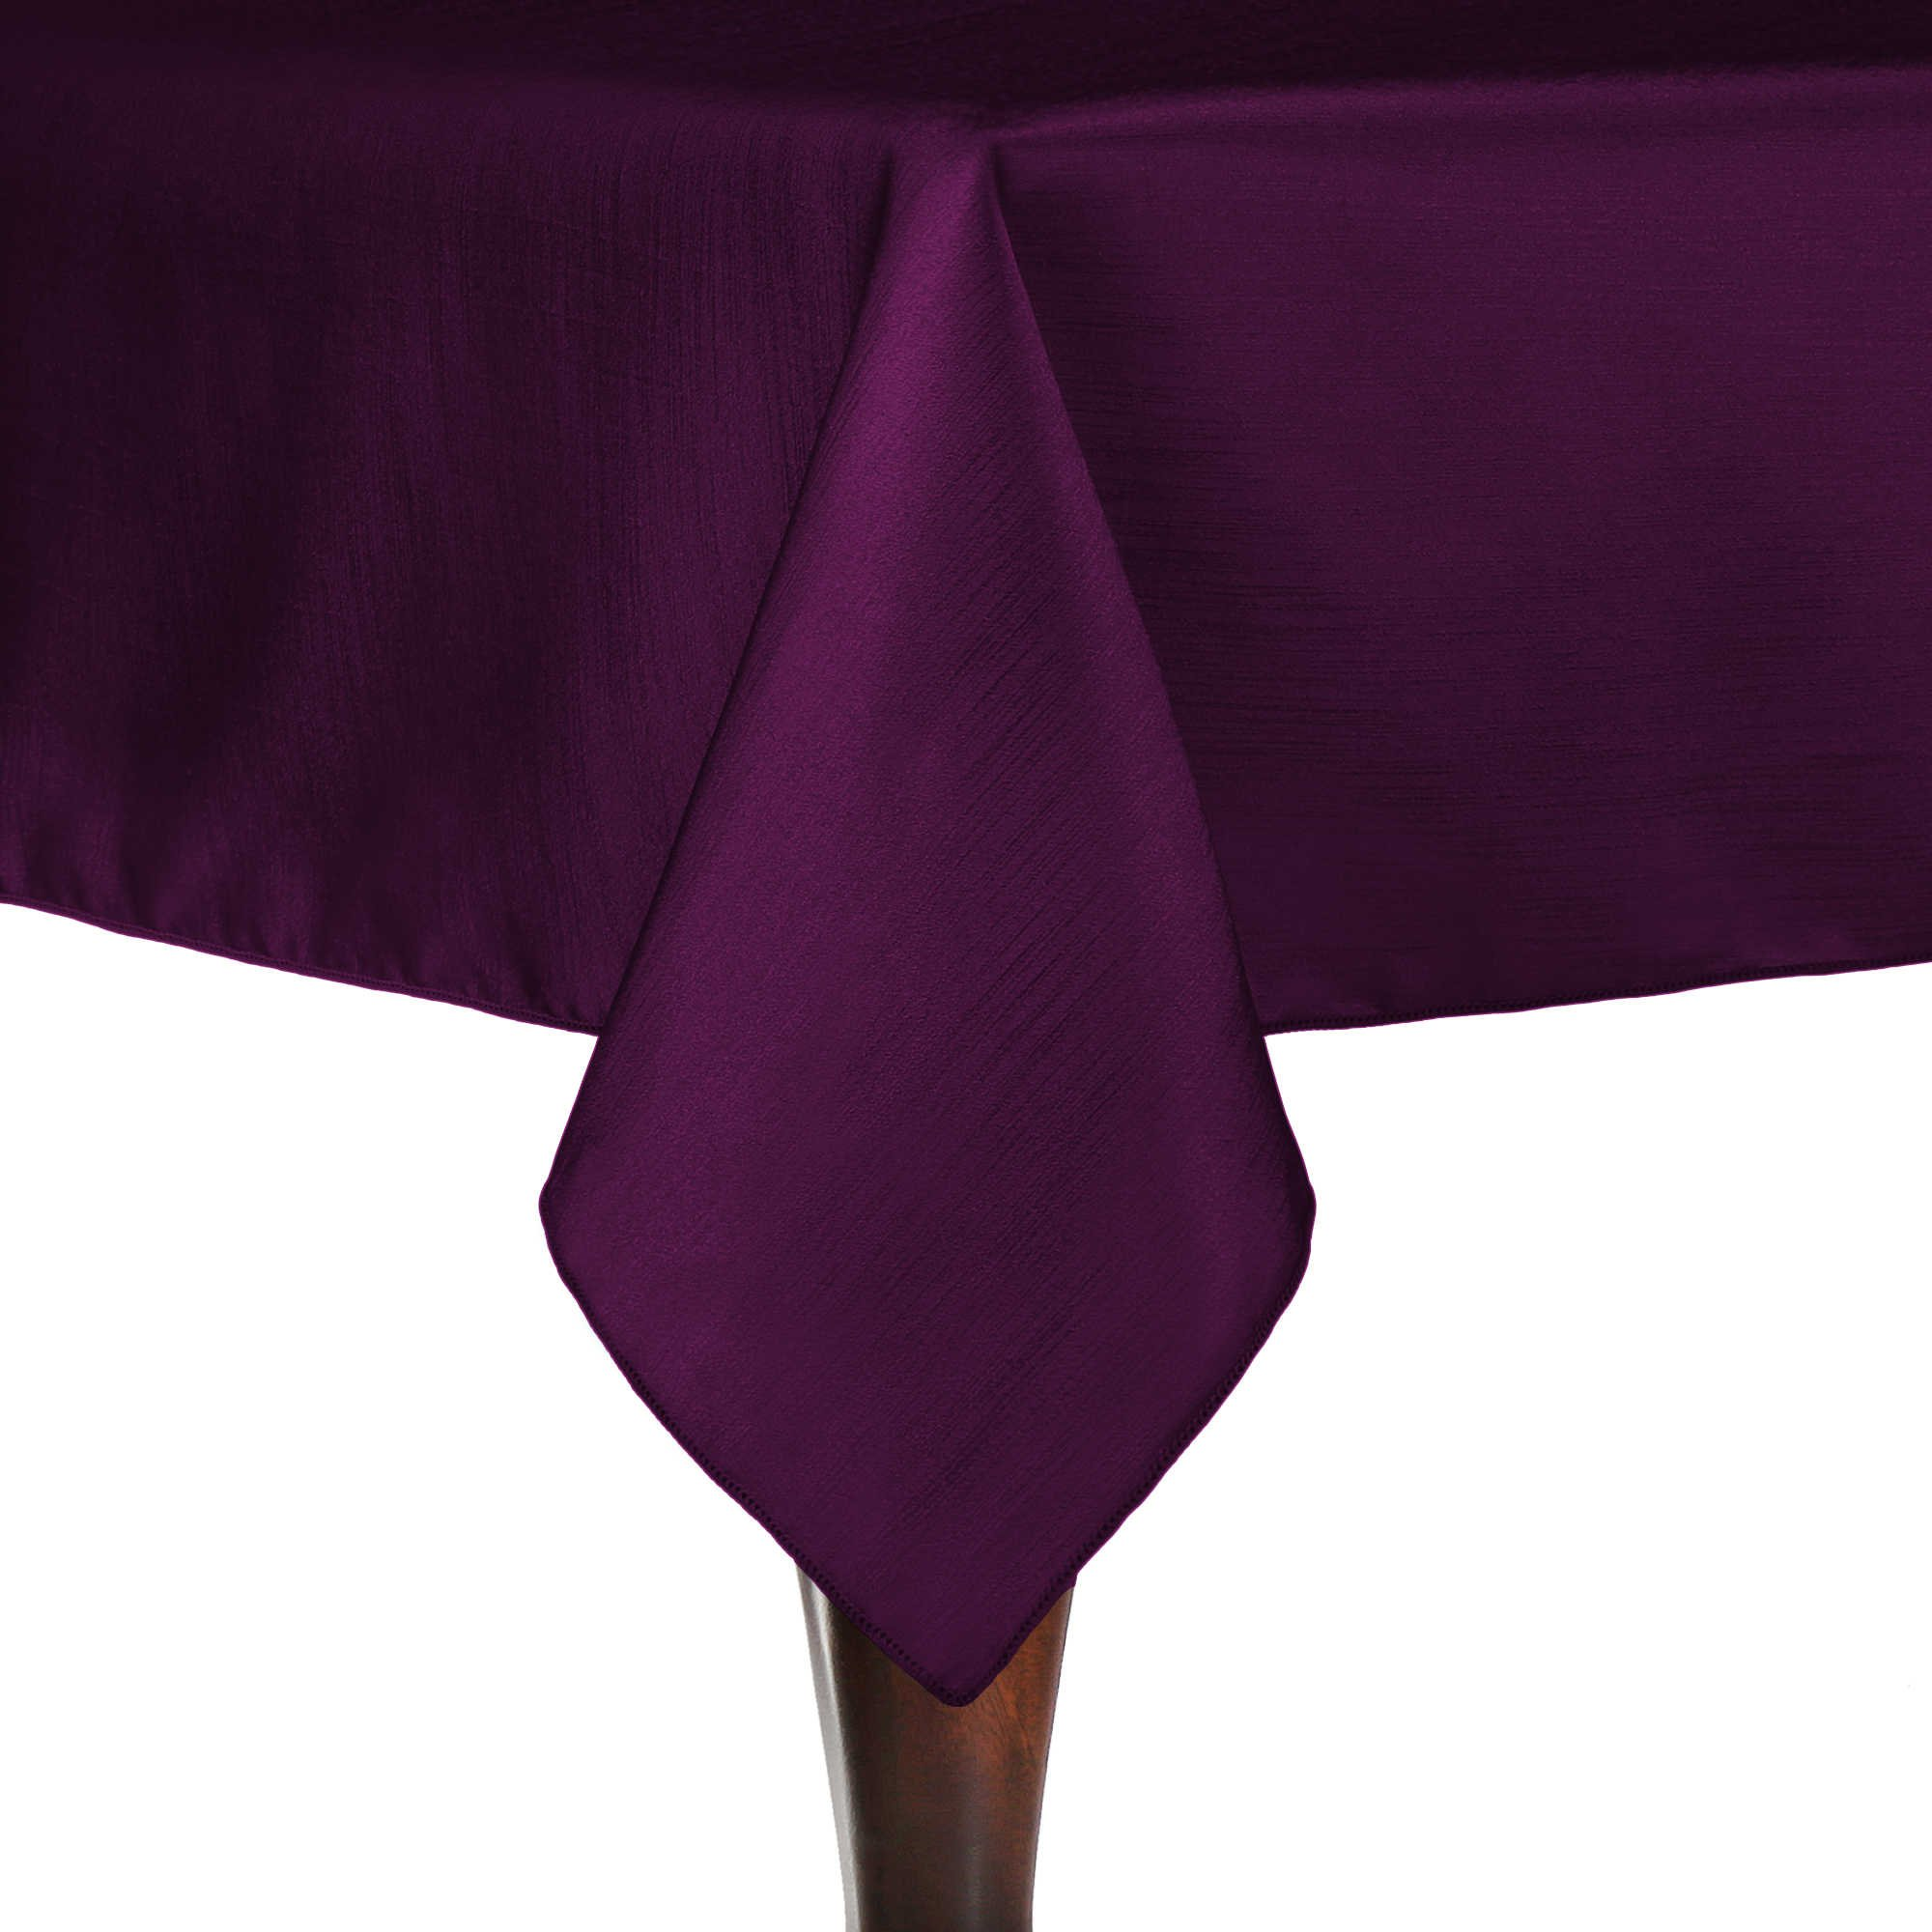 Ultimate Textile (36 Pack) Reversible Shantung Satin - Majestic 60 x 120-Inch Rectangular Tablecloth - for Weddings, Home Parties and Special Event use, Aubergine Eggplant